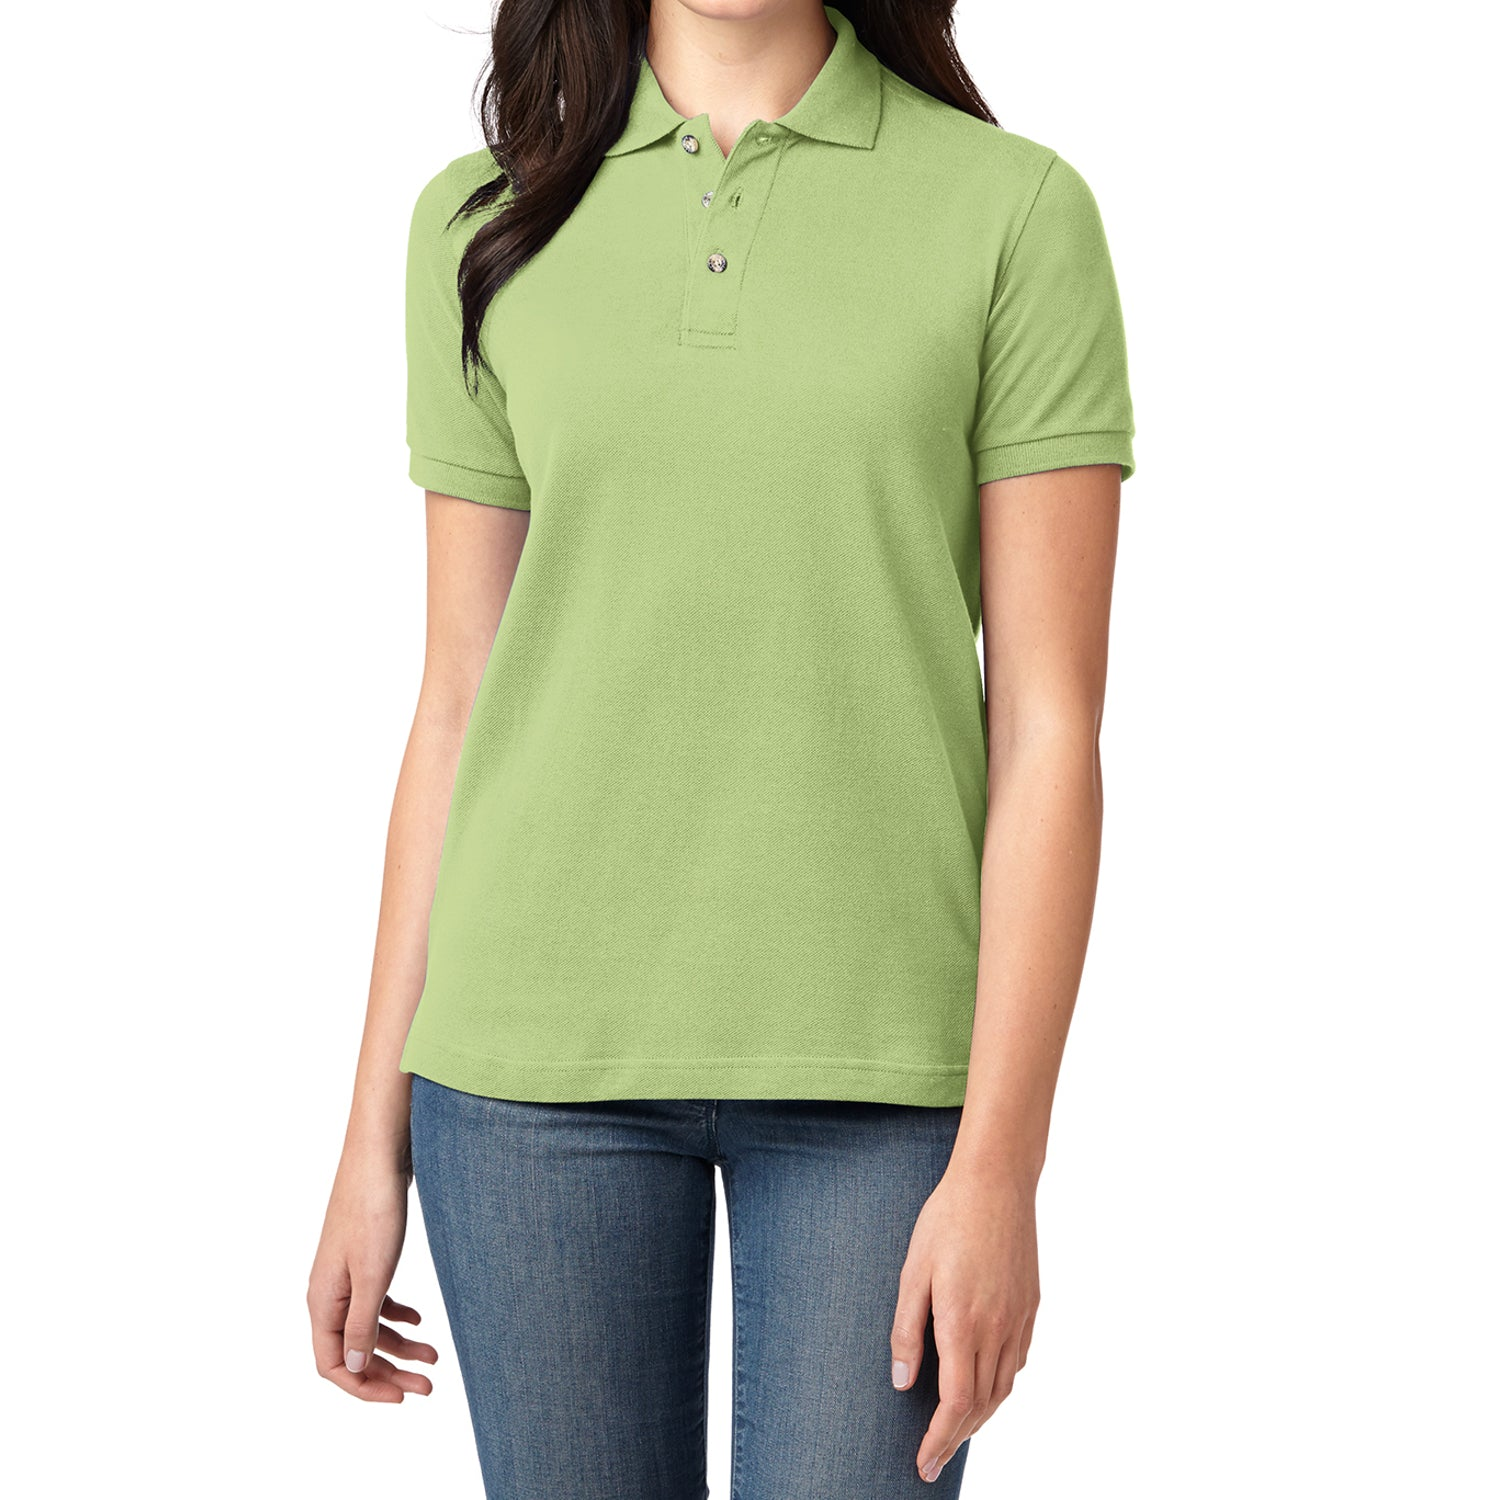 Mafoose Women's Heavyweight Cotton Pique Polo Shirt Pistachio-Front